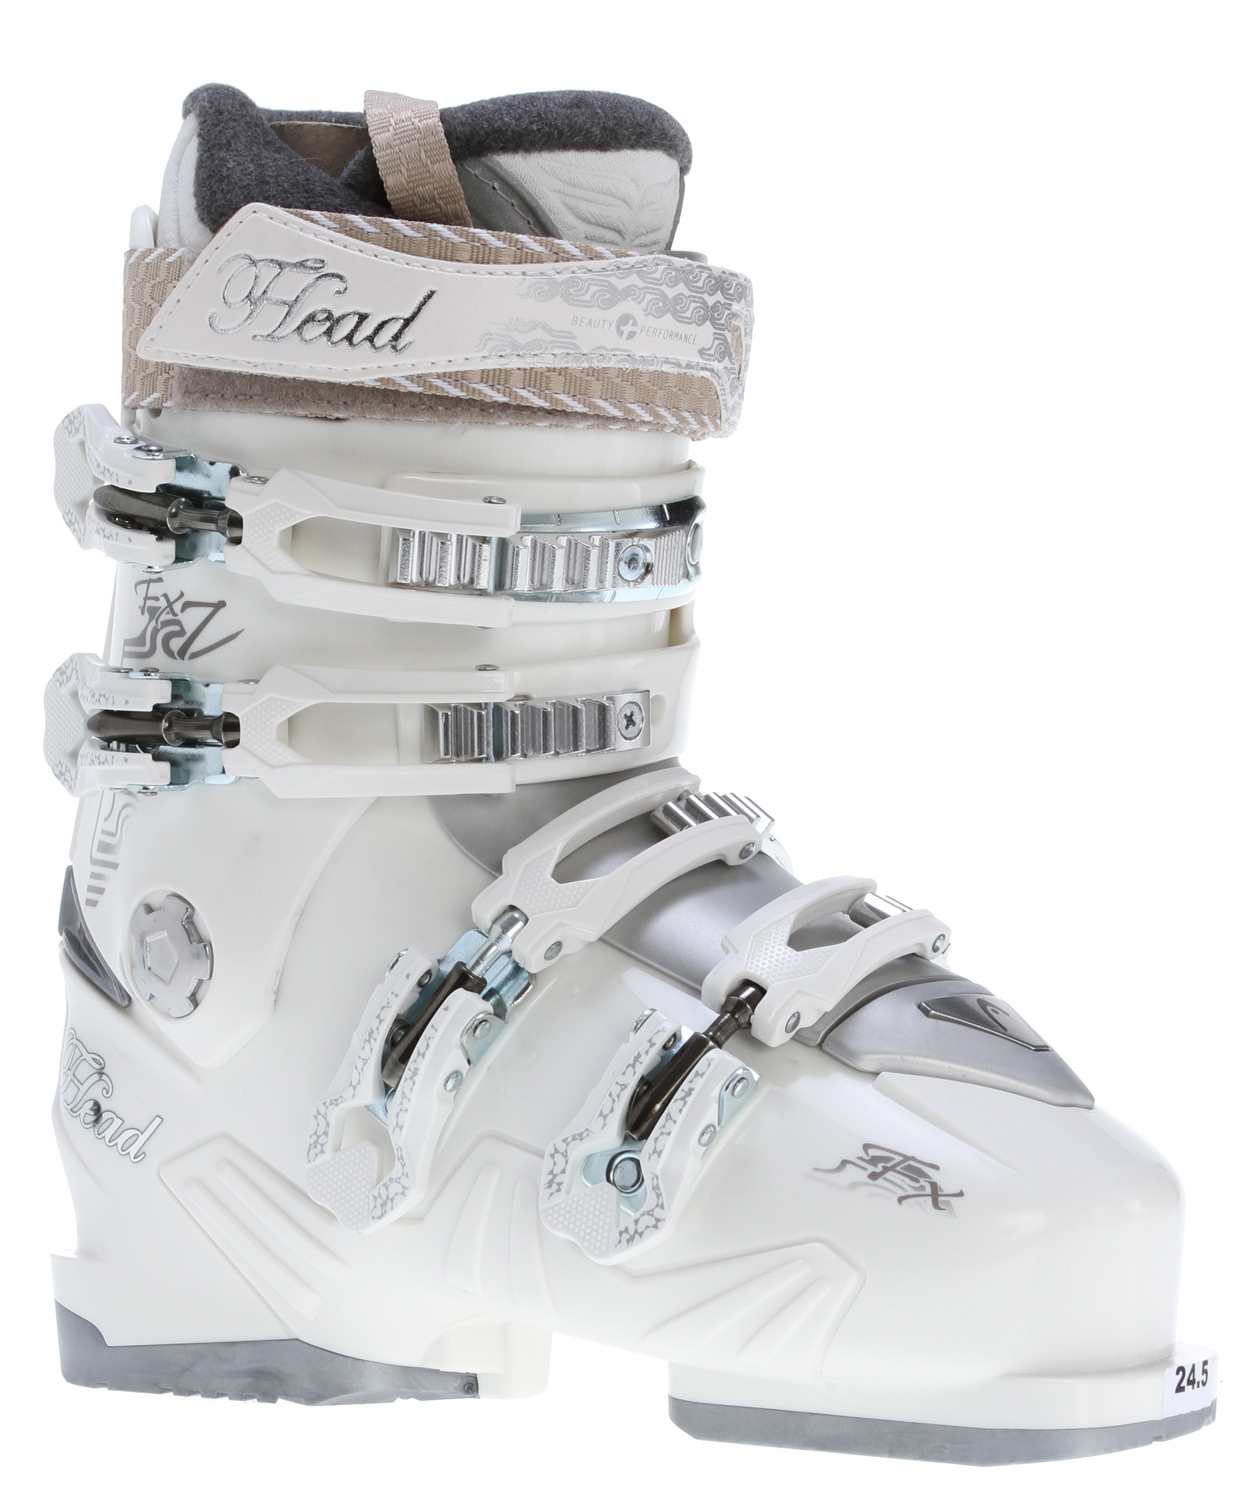 Ski Key Features of the Head FX7 Mya Ski Boots Pearl: Level: intermediate SL Shell Comfort Liner Fleece Lining Tongue Handle Comfort Footbed 4 Micro Adjustable Plastic Buckles Super Macro Ratchet Power Control Frame Flex Index: 70 - $138.95